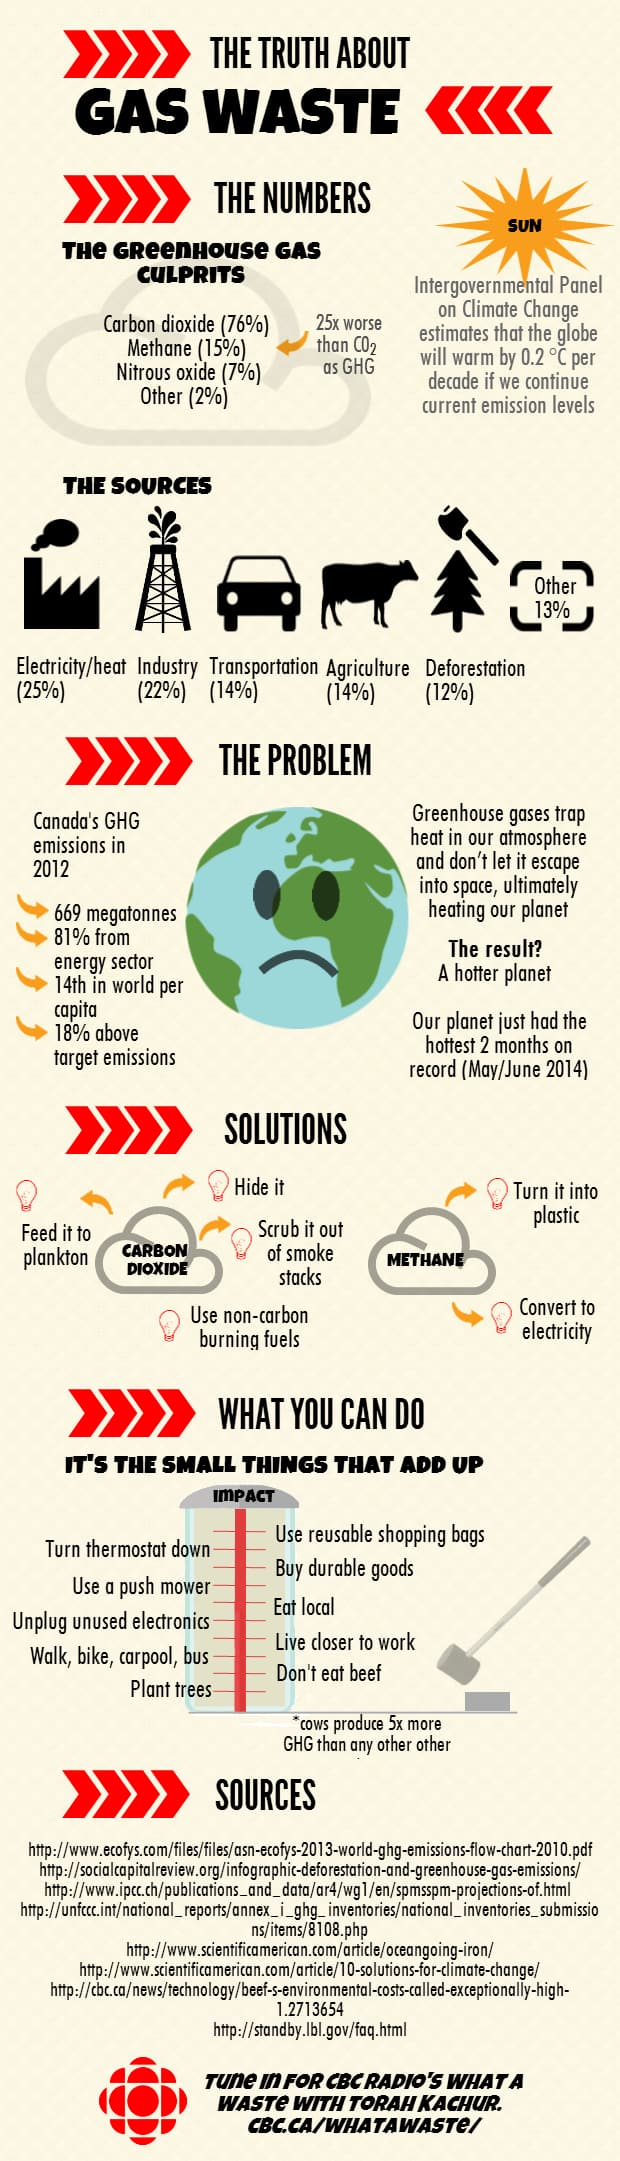 Gas waste infographic